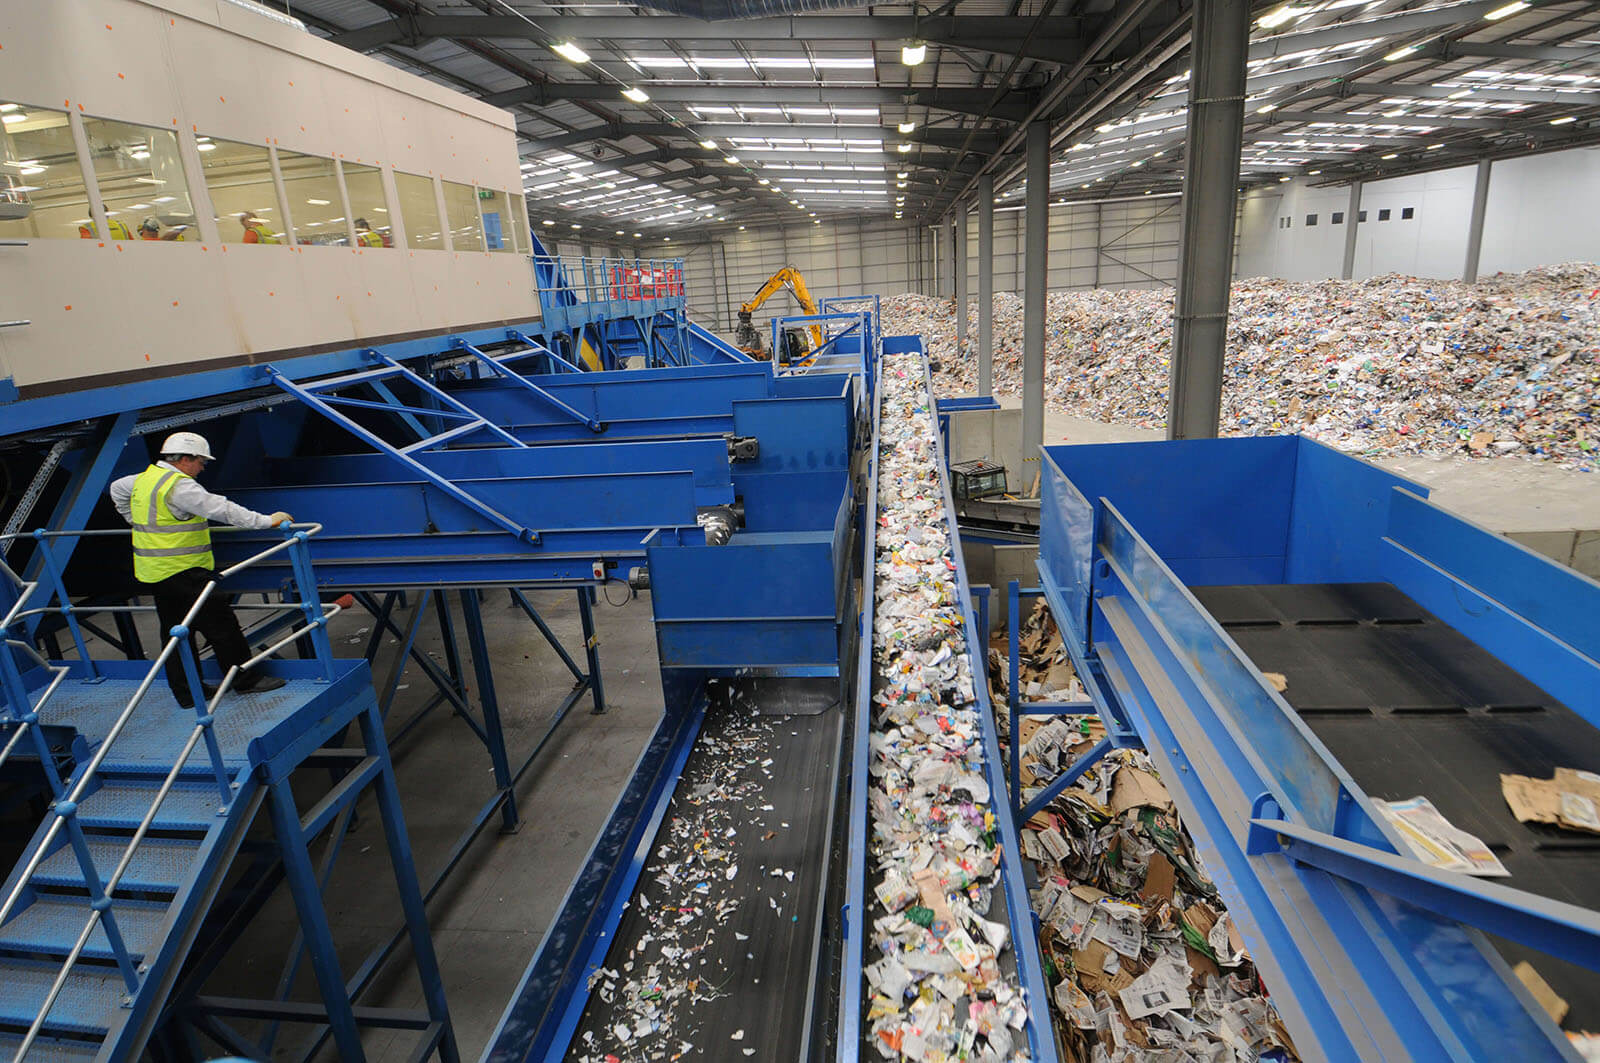 Waste sorting process